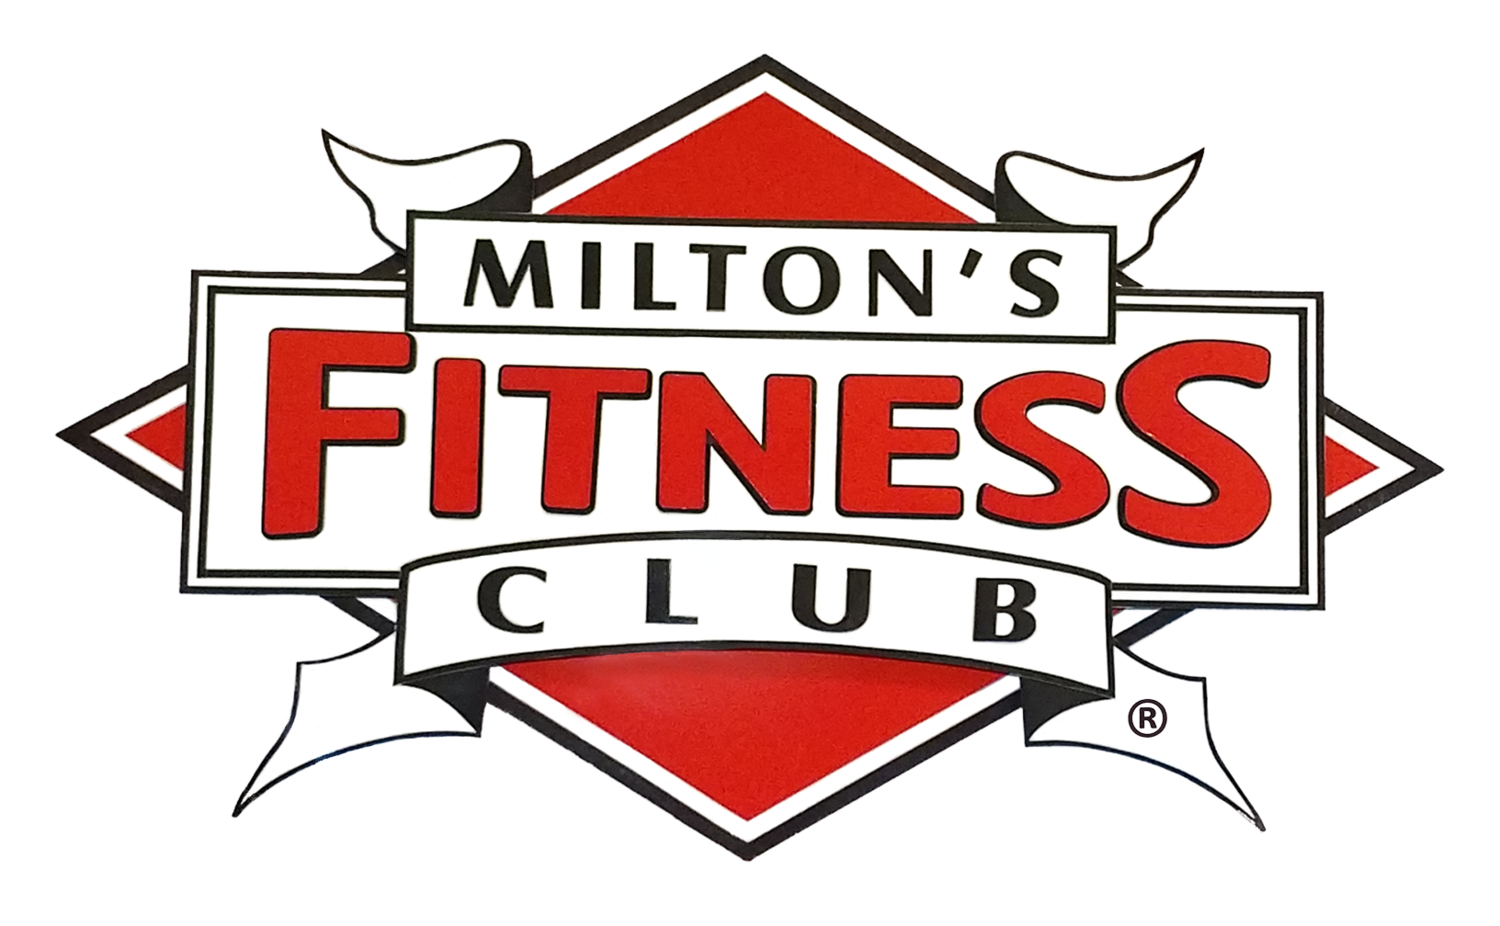 Milton's Fitness Club